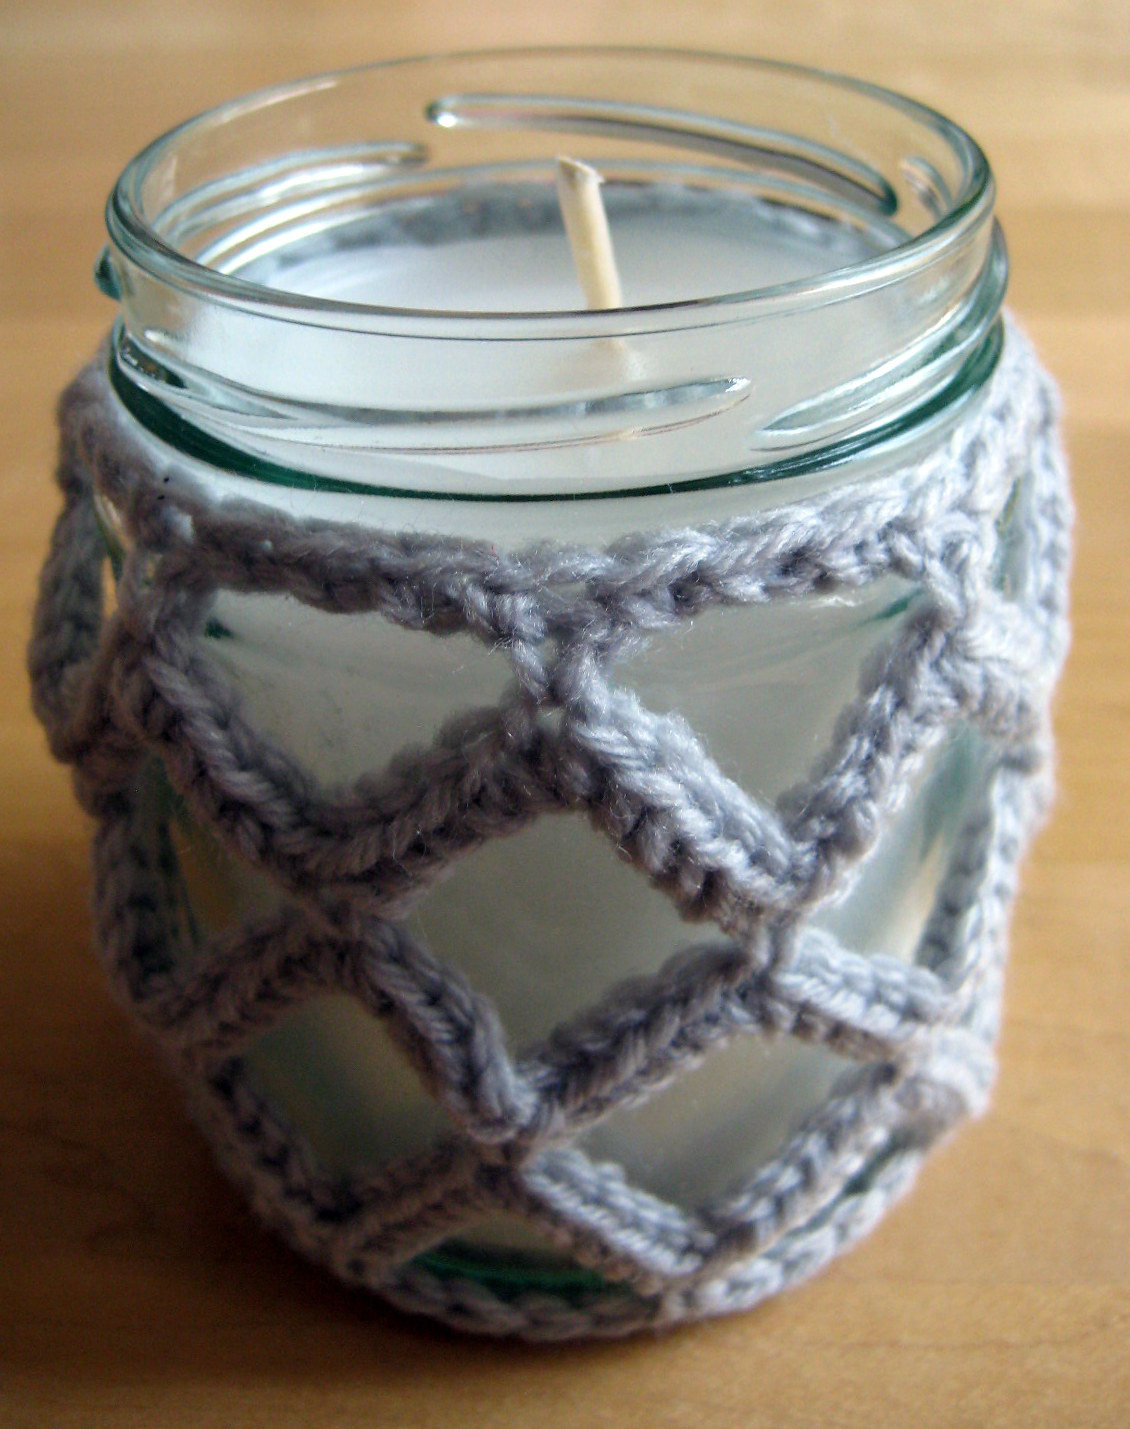 Crochet Patterns Jar Covers : Crochet Jar Cover III: Lattice Effect Make My Day Creative